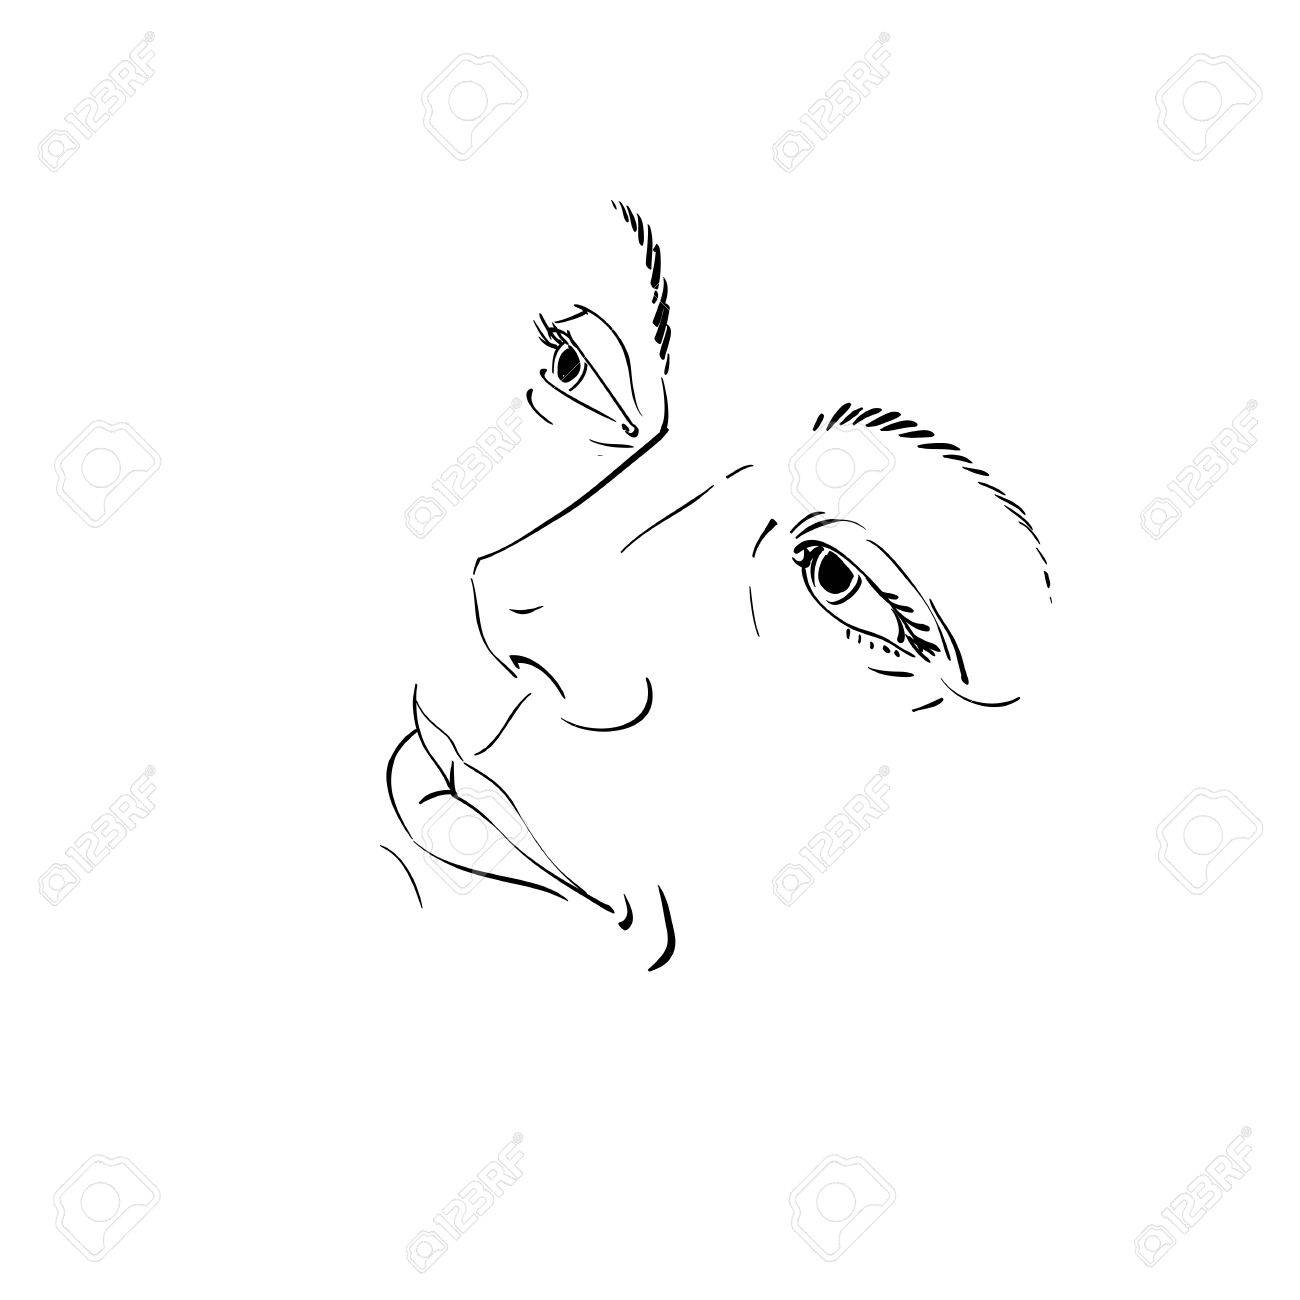 Hand drawn illustration of woman face black and white mask with